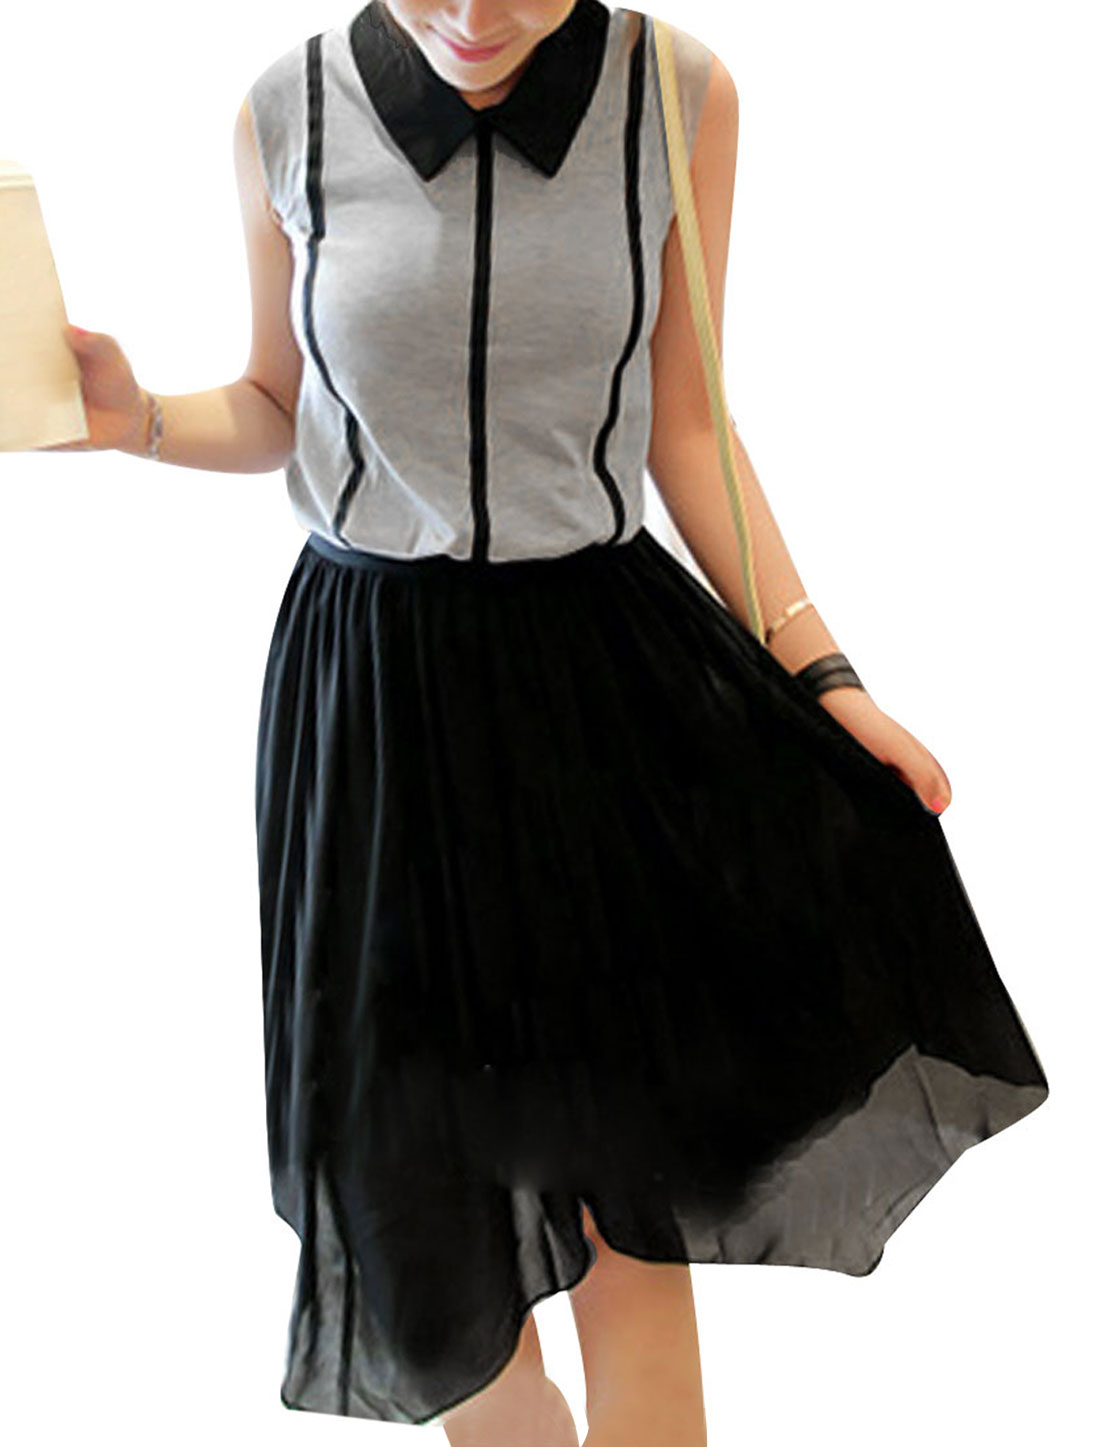 Lady Stylish Semi-sheer Doll Collar Pleated Dress Heather Gray Black XS